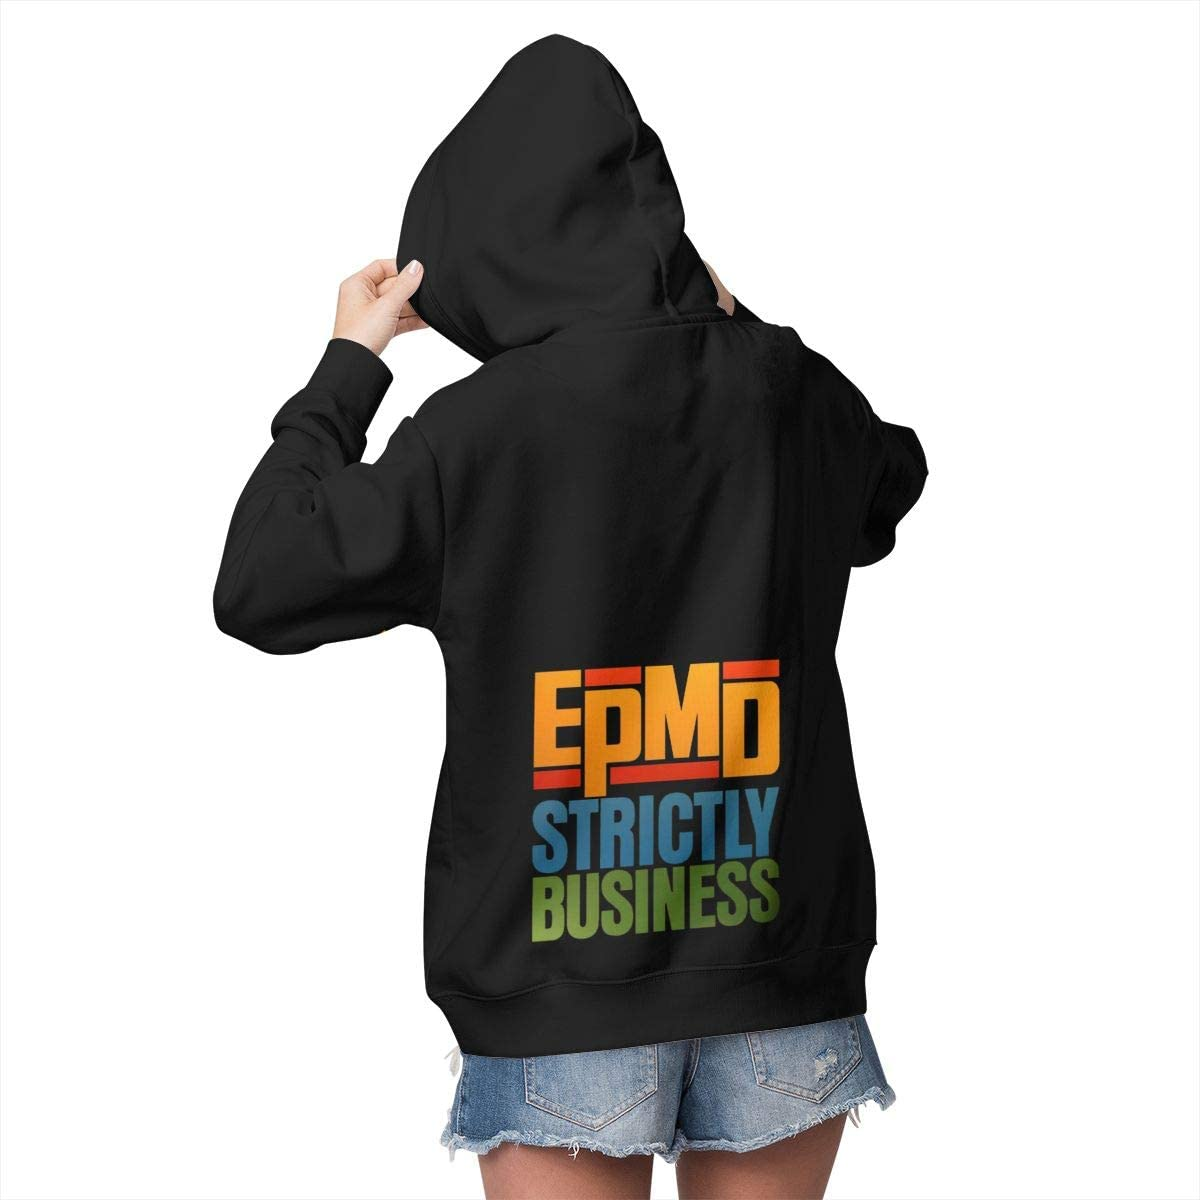 EPMD Strictly Business Womens Winter Jacket Clothes Plus Velvet Pullover Sweatshirt Print Hoodies